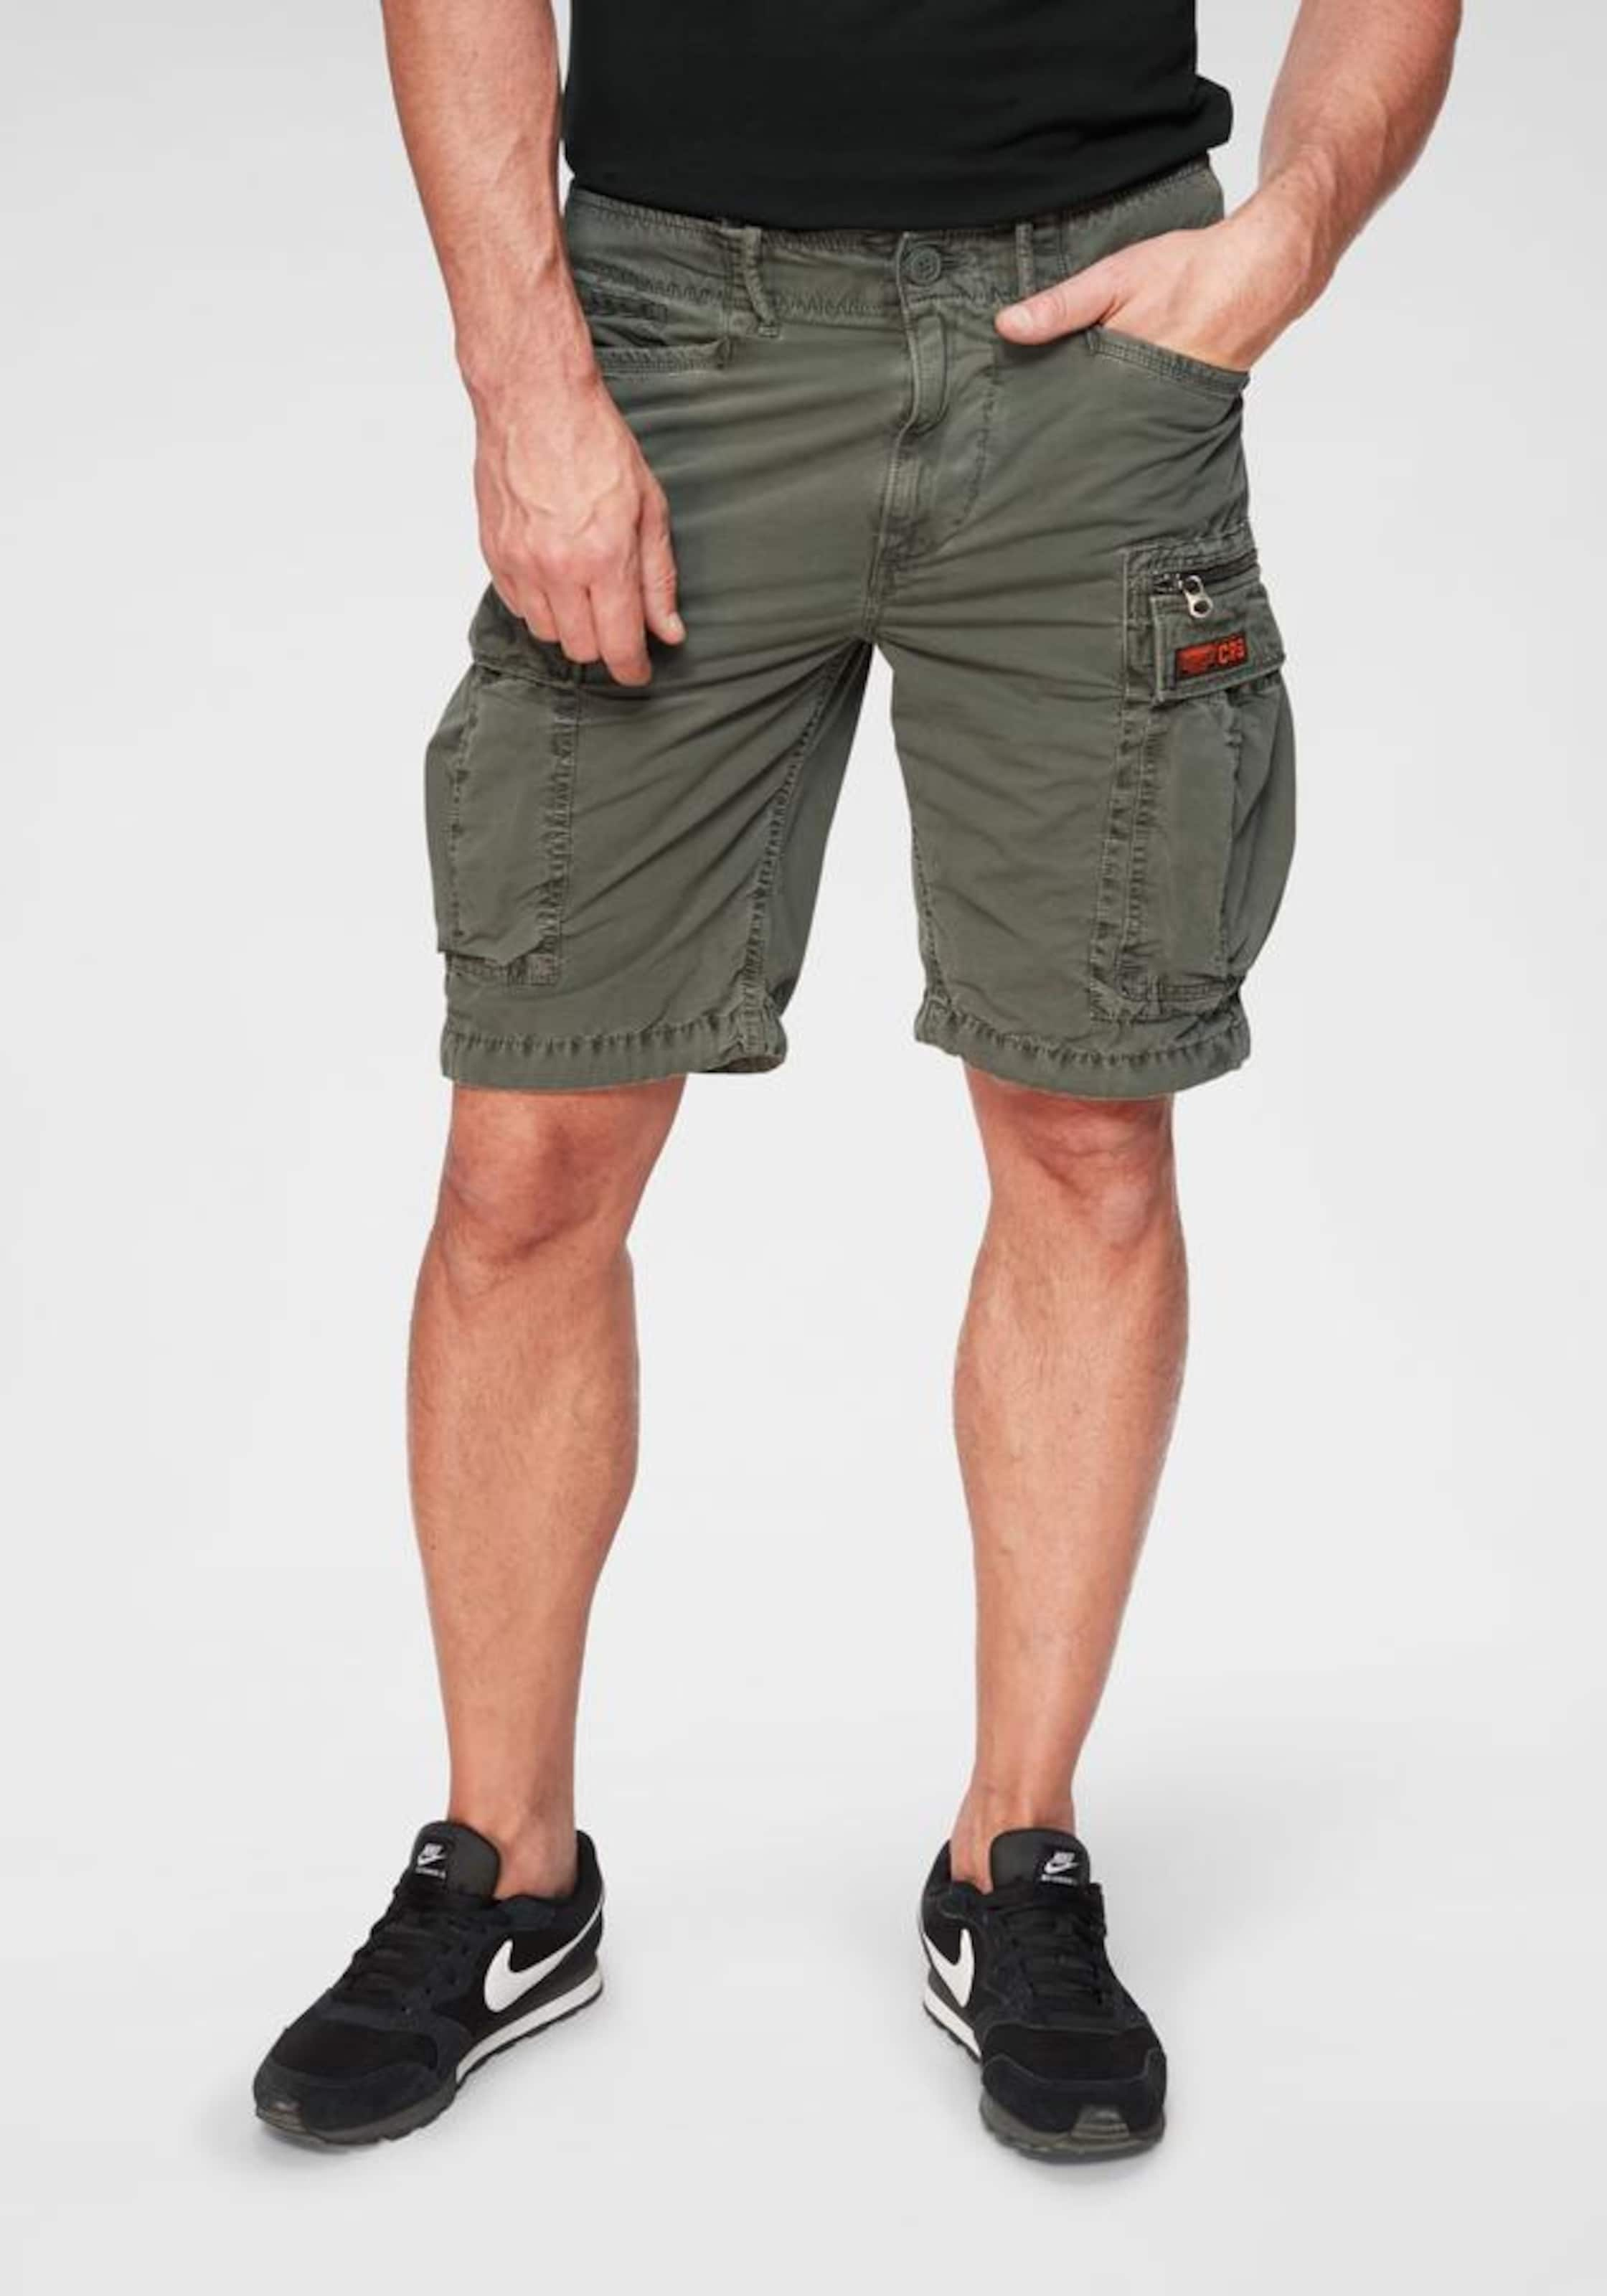 Superdry Superdry In In 'parachute' Cargoshorts Cargoshorts Khaki Superdry Khaki 'parachute' 'parachute' Cargoshorts In xsdChorBQt